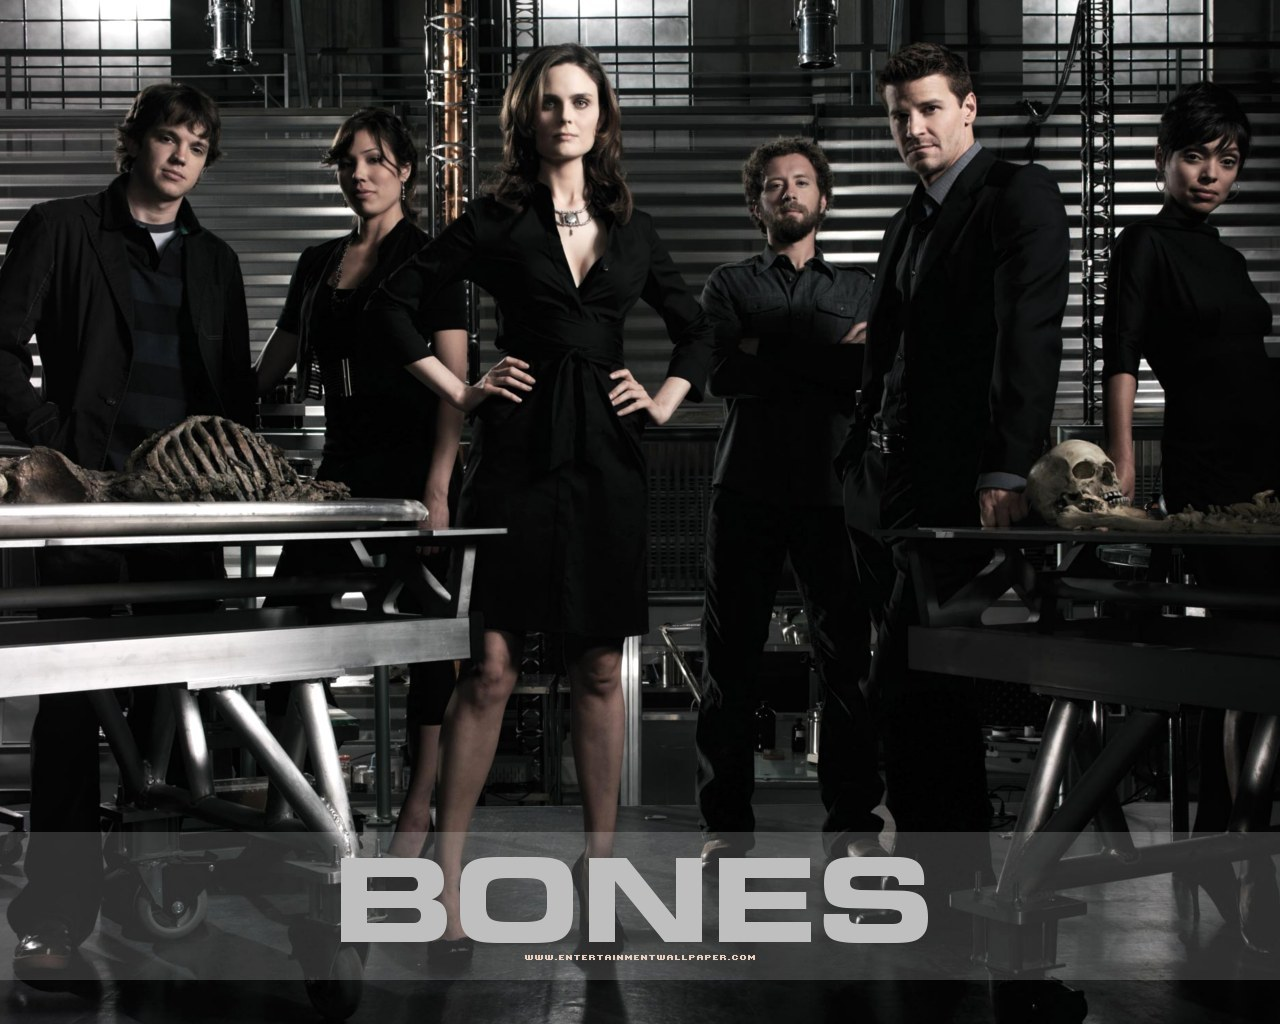 http://2.bp.blogspot.com/-f3XIiZF5F94/TmOSLkLGYAI/AAAAAAAAAy0/WAR83e_4ODk/s1600/bones_tv_episode_all_star_desktop_wallpapers_www.Vvallpaper.net.jpg Crossbones Tv Show